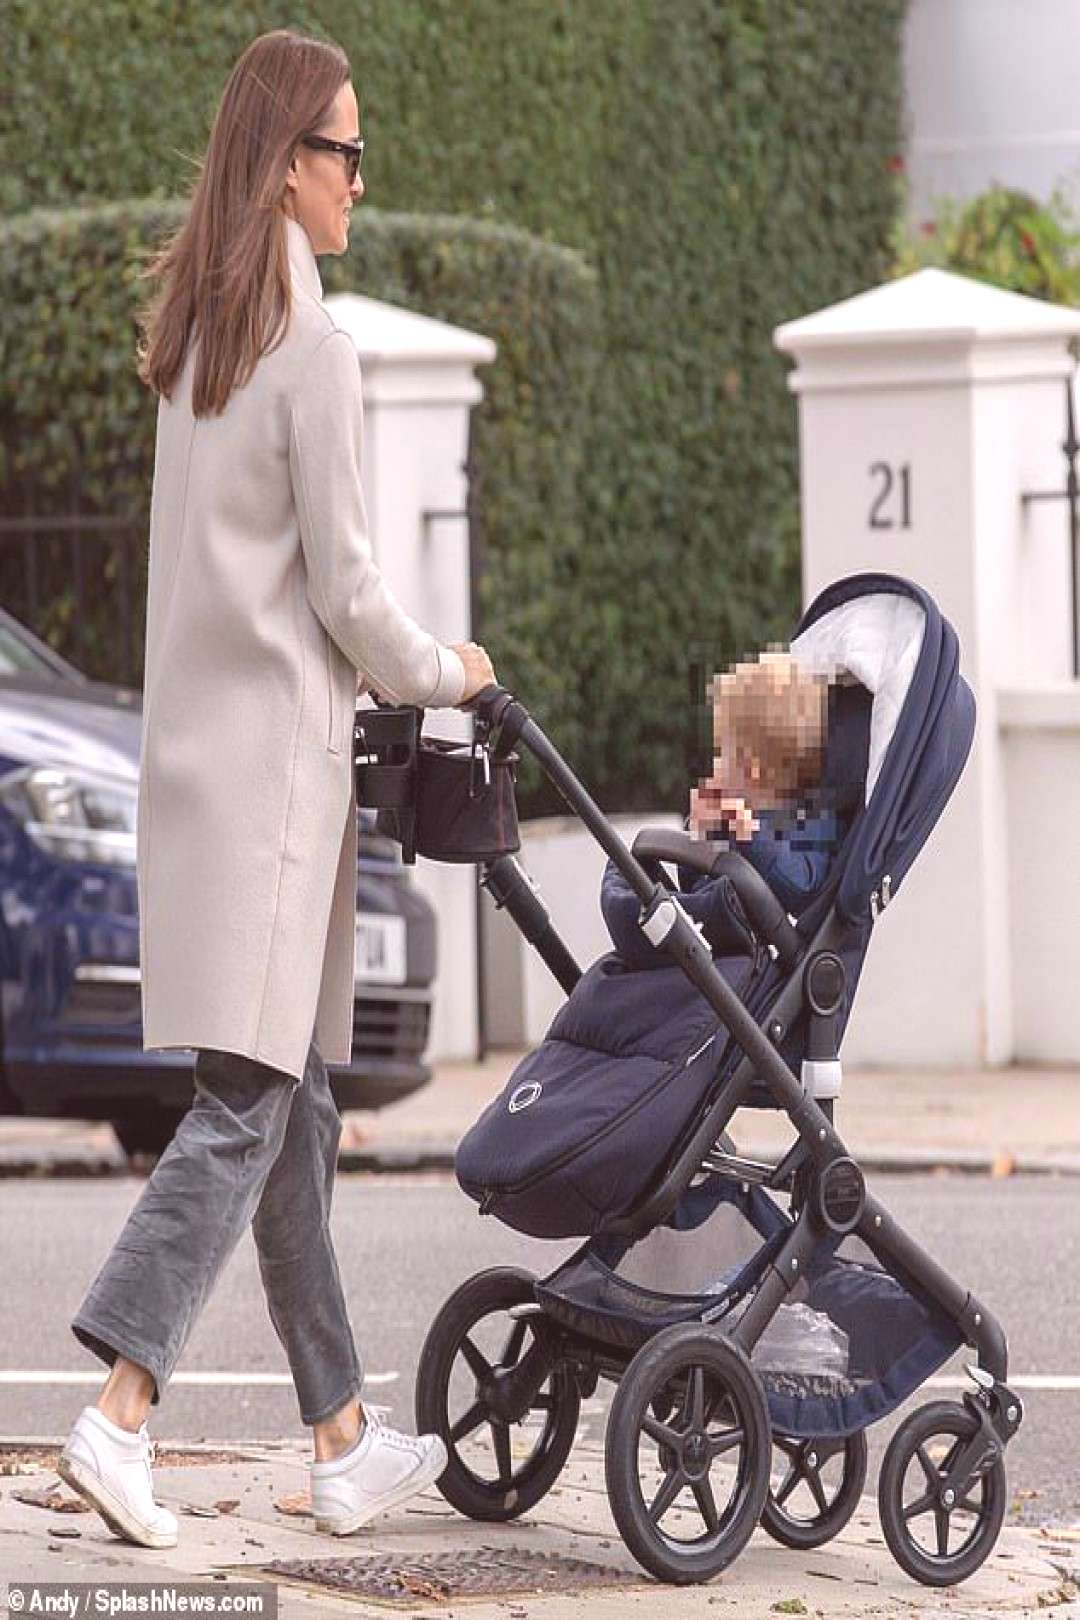 Pippa Middleton takes son Arthur for a stroll in London on his first birthday | Daily Mail Online